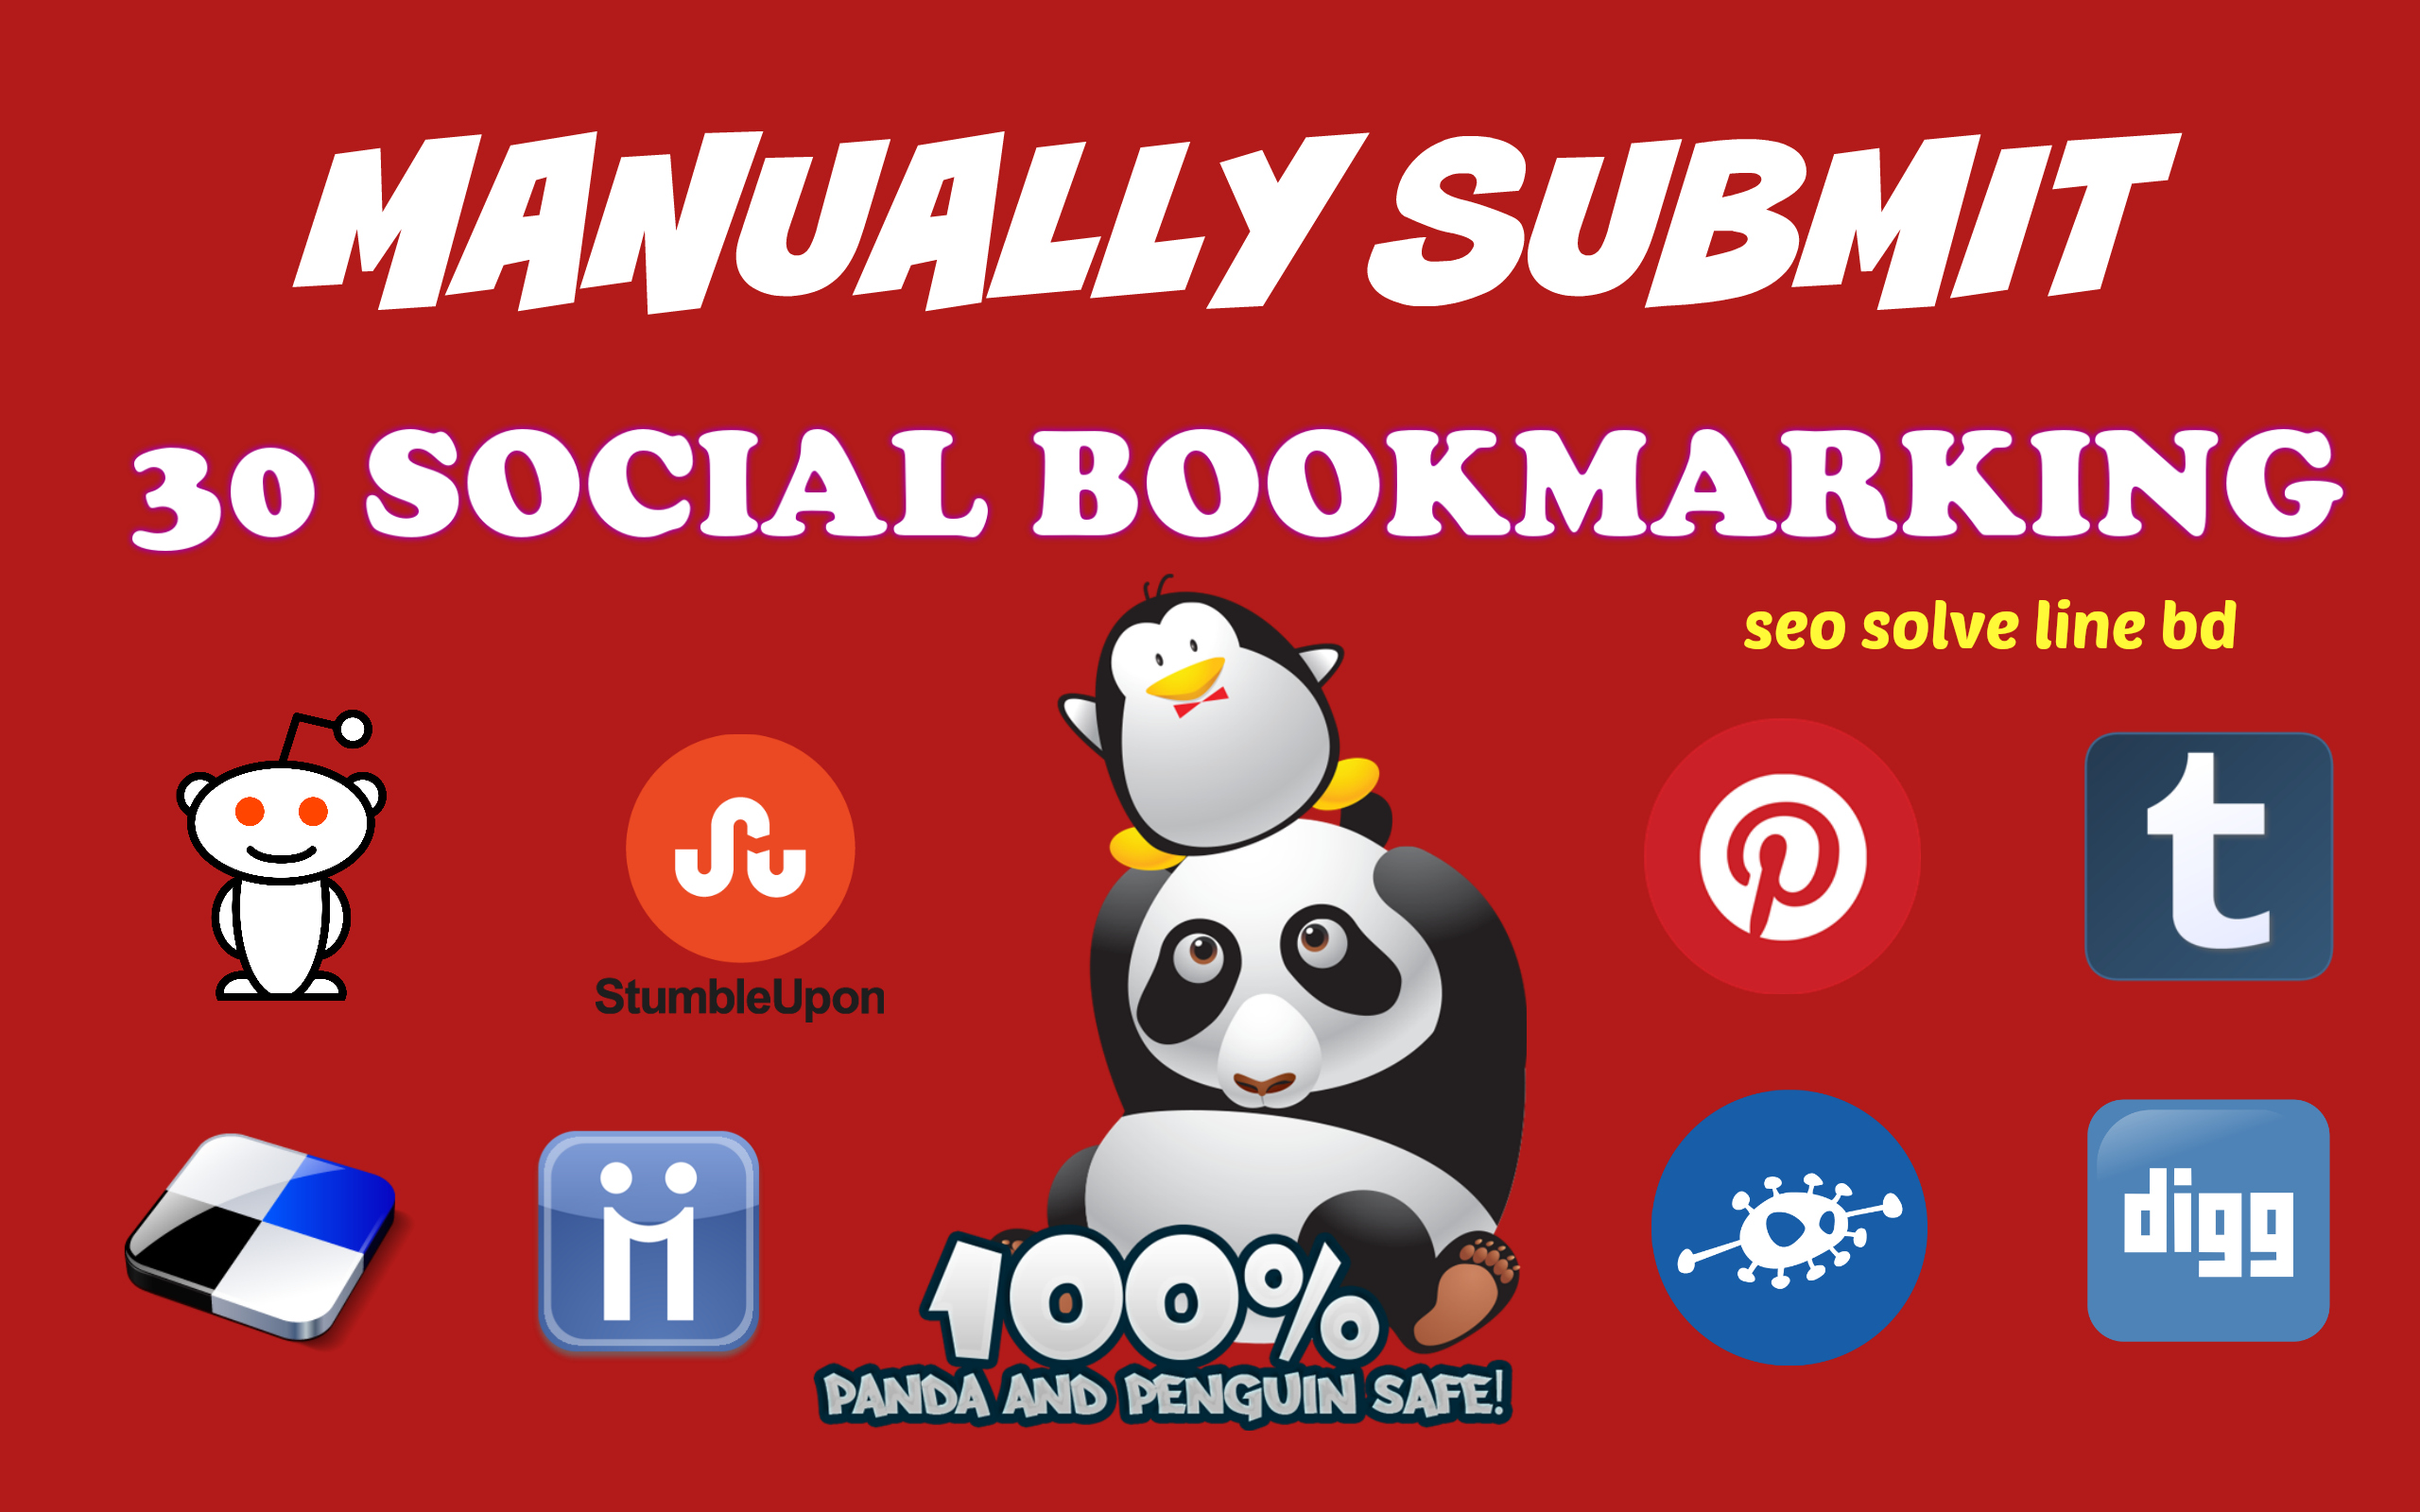 Manually Submit 30 Social Bookmarking Backlinks for you